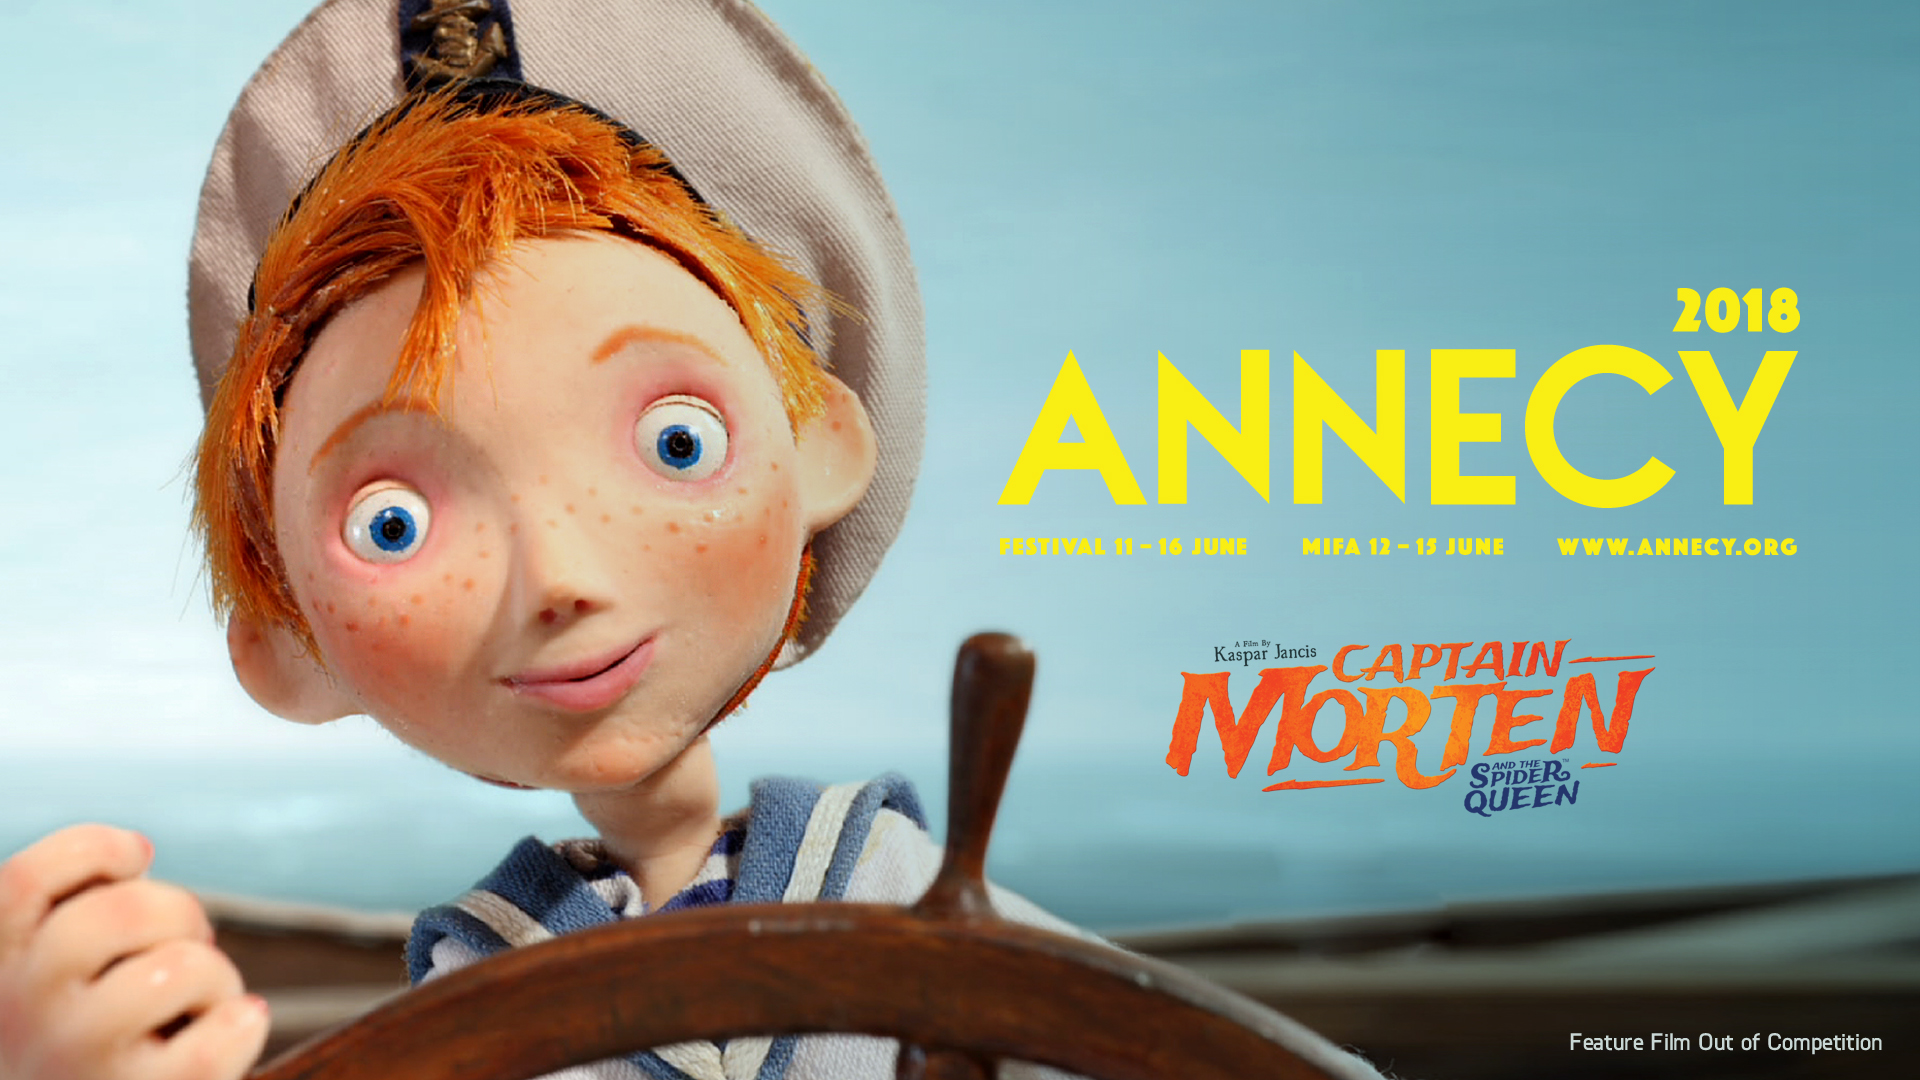 Captain_Morten_and _the_Spider_Queen_Annecy_Announcement_2018_English.jpg